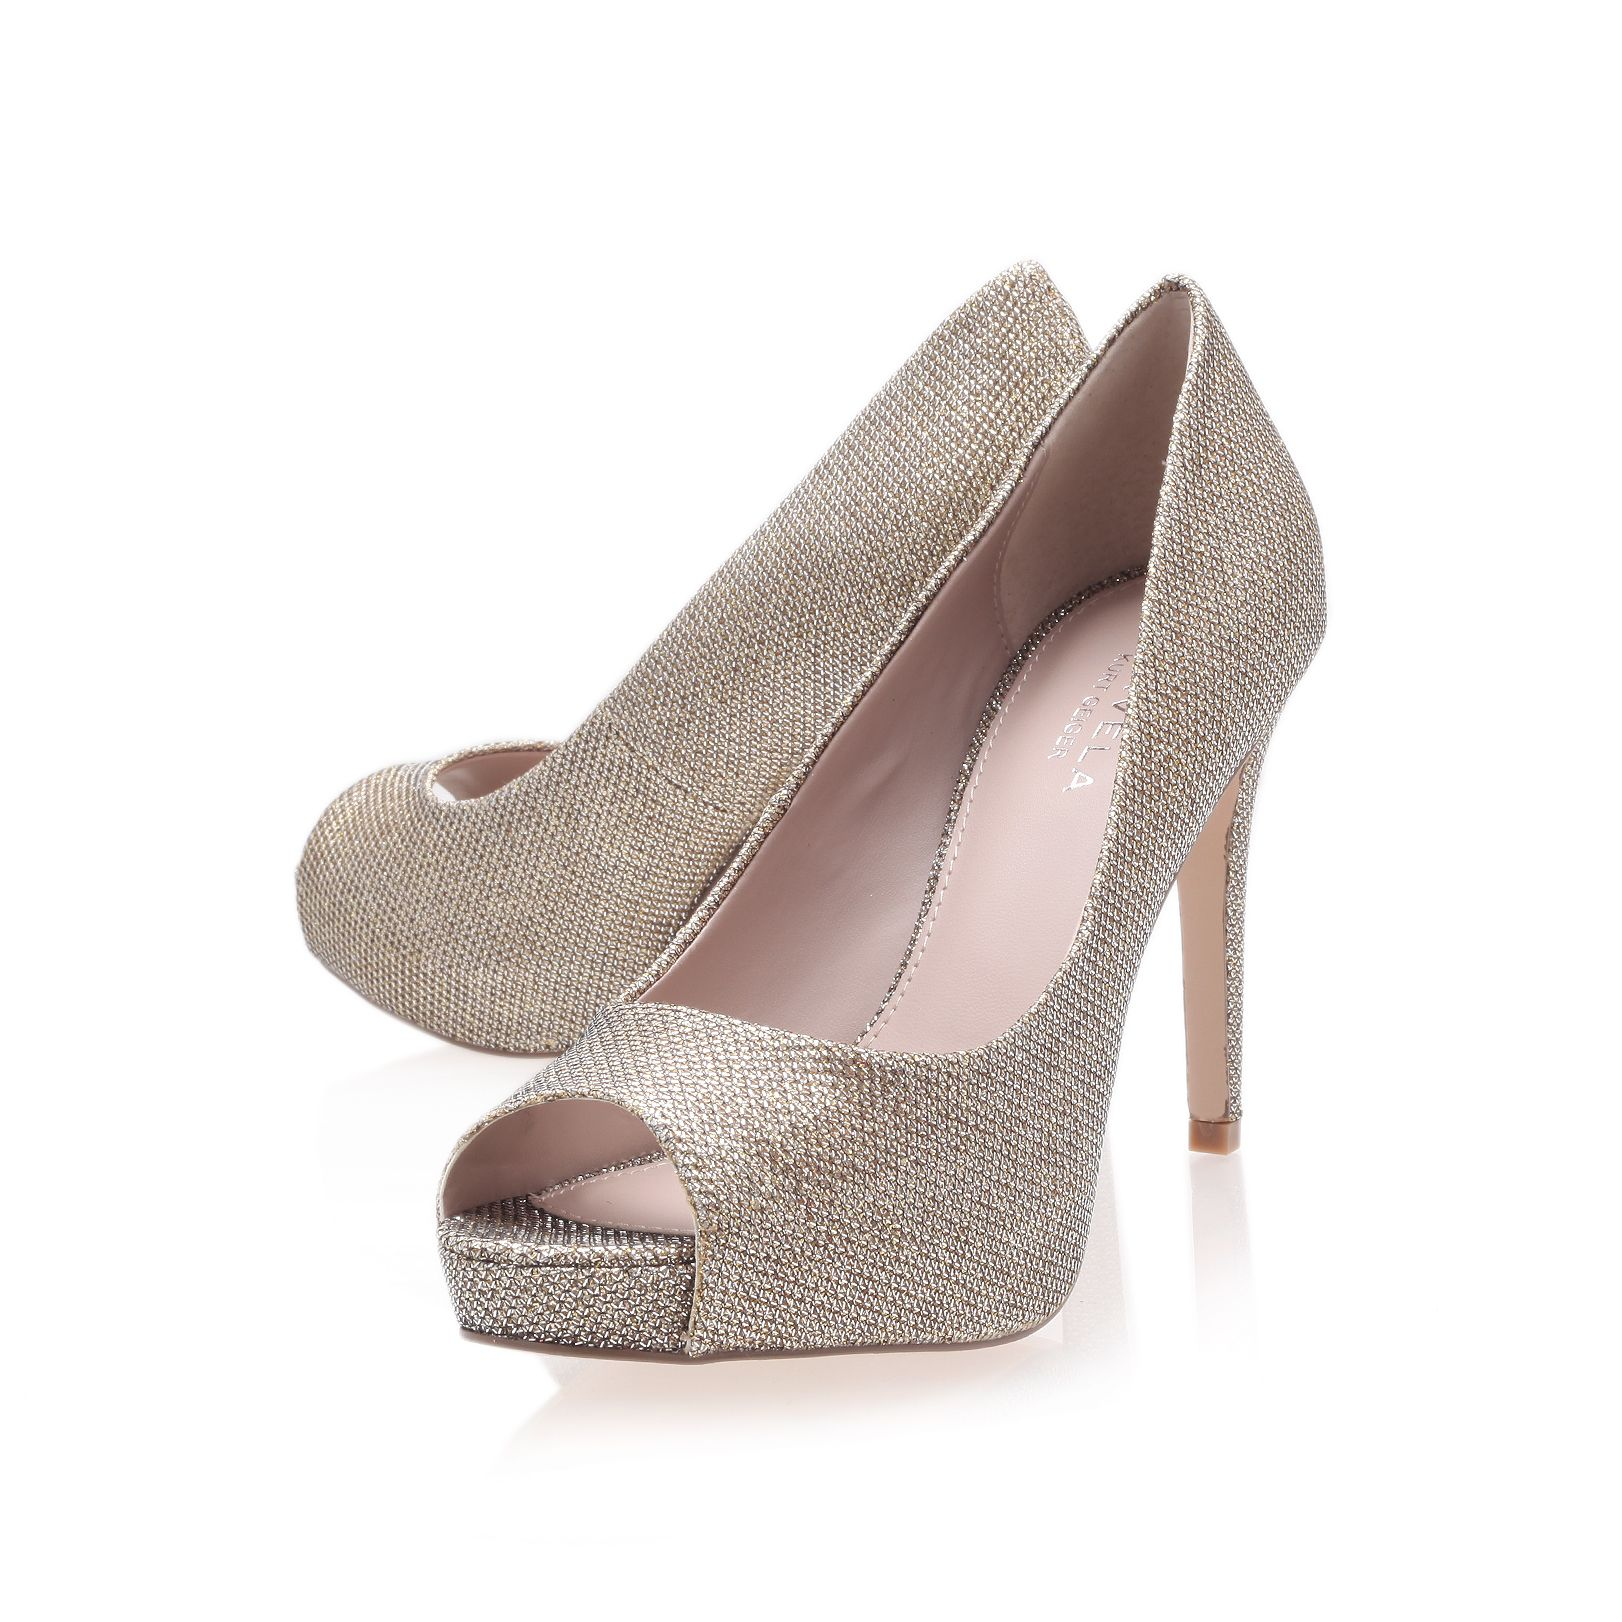 Lara peep toe shoes